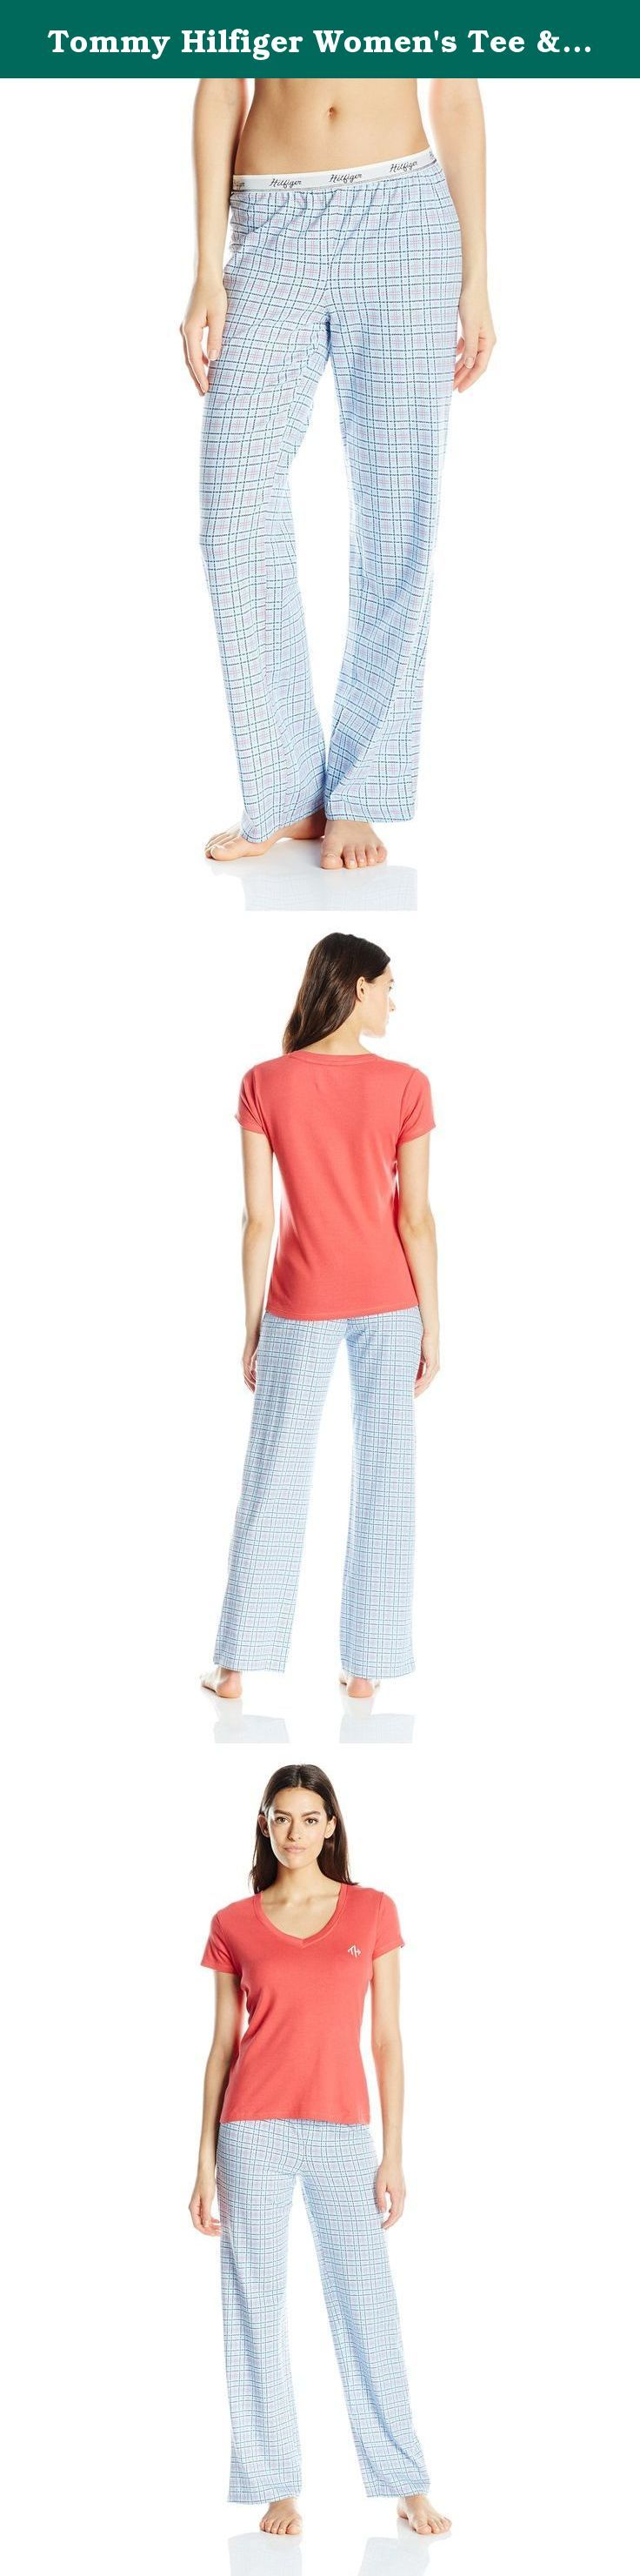 Tommy Hilfiger Women's Tee & Logo Pant Set , Chrysanthemum/Summertide Plaid, Large. Every Tommy girl will love these cute, classic, and comfortable pajama sets. In four beautiful, fun prints, there's a Tommy Hilfiger pajama for every special girl in your life.